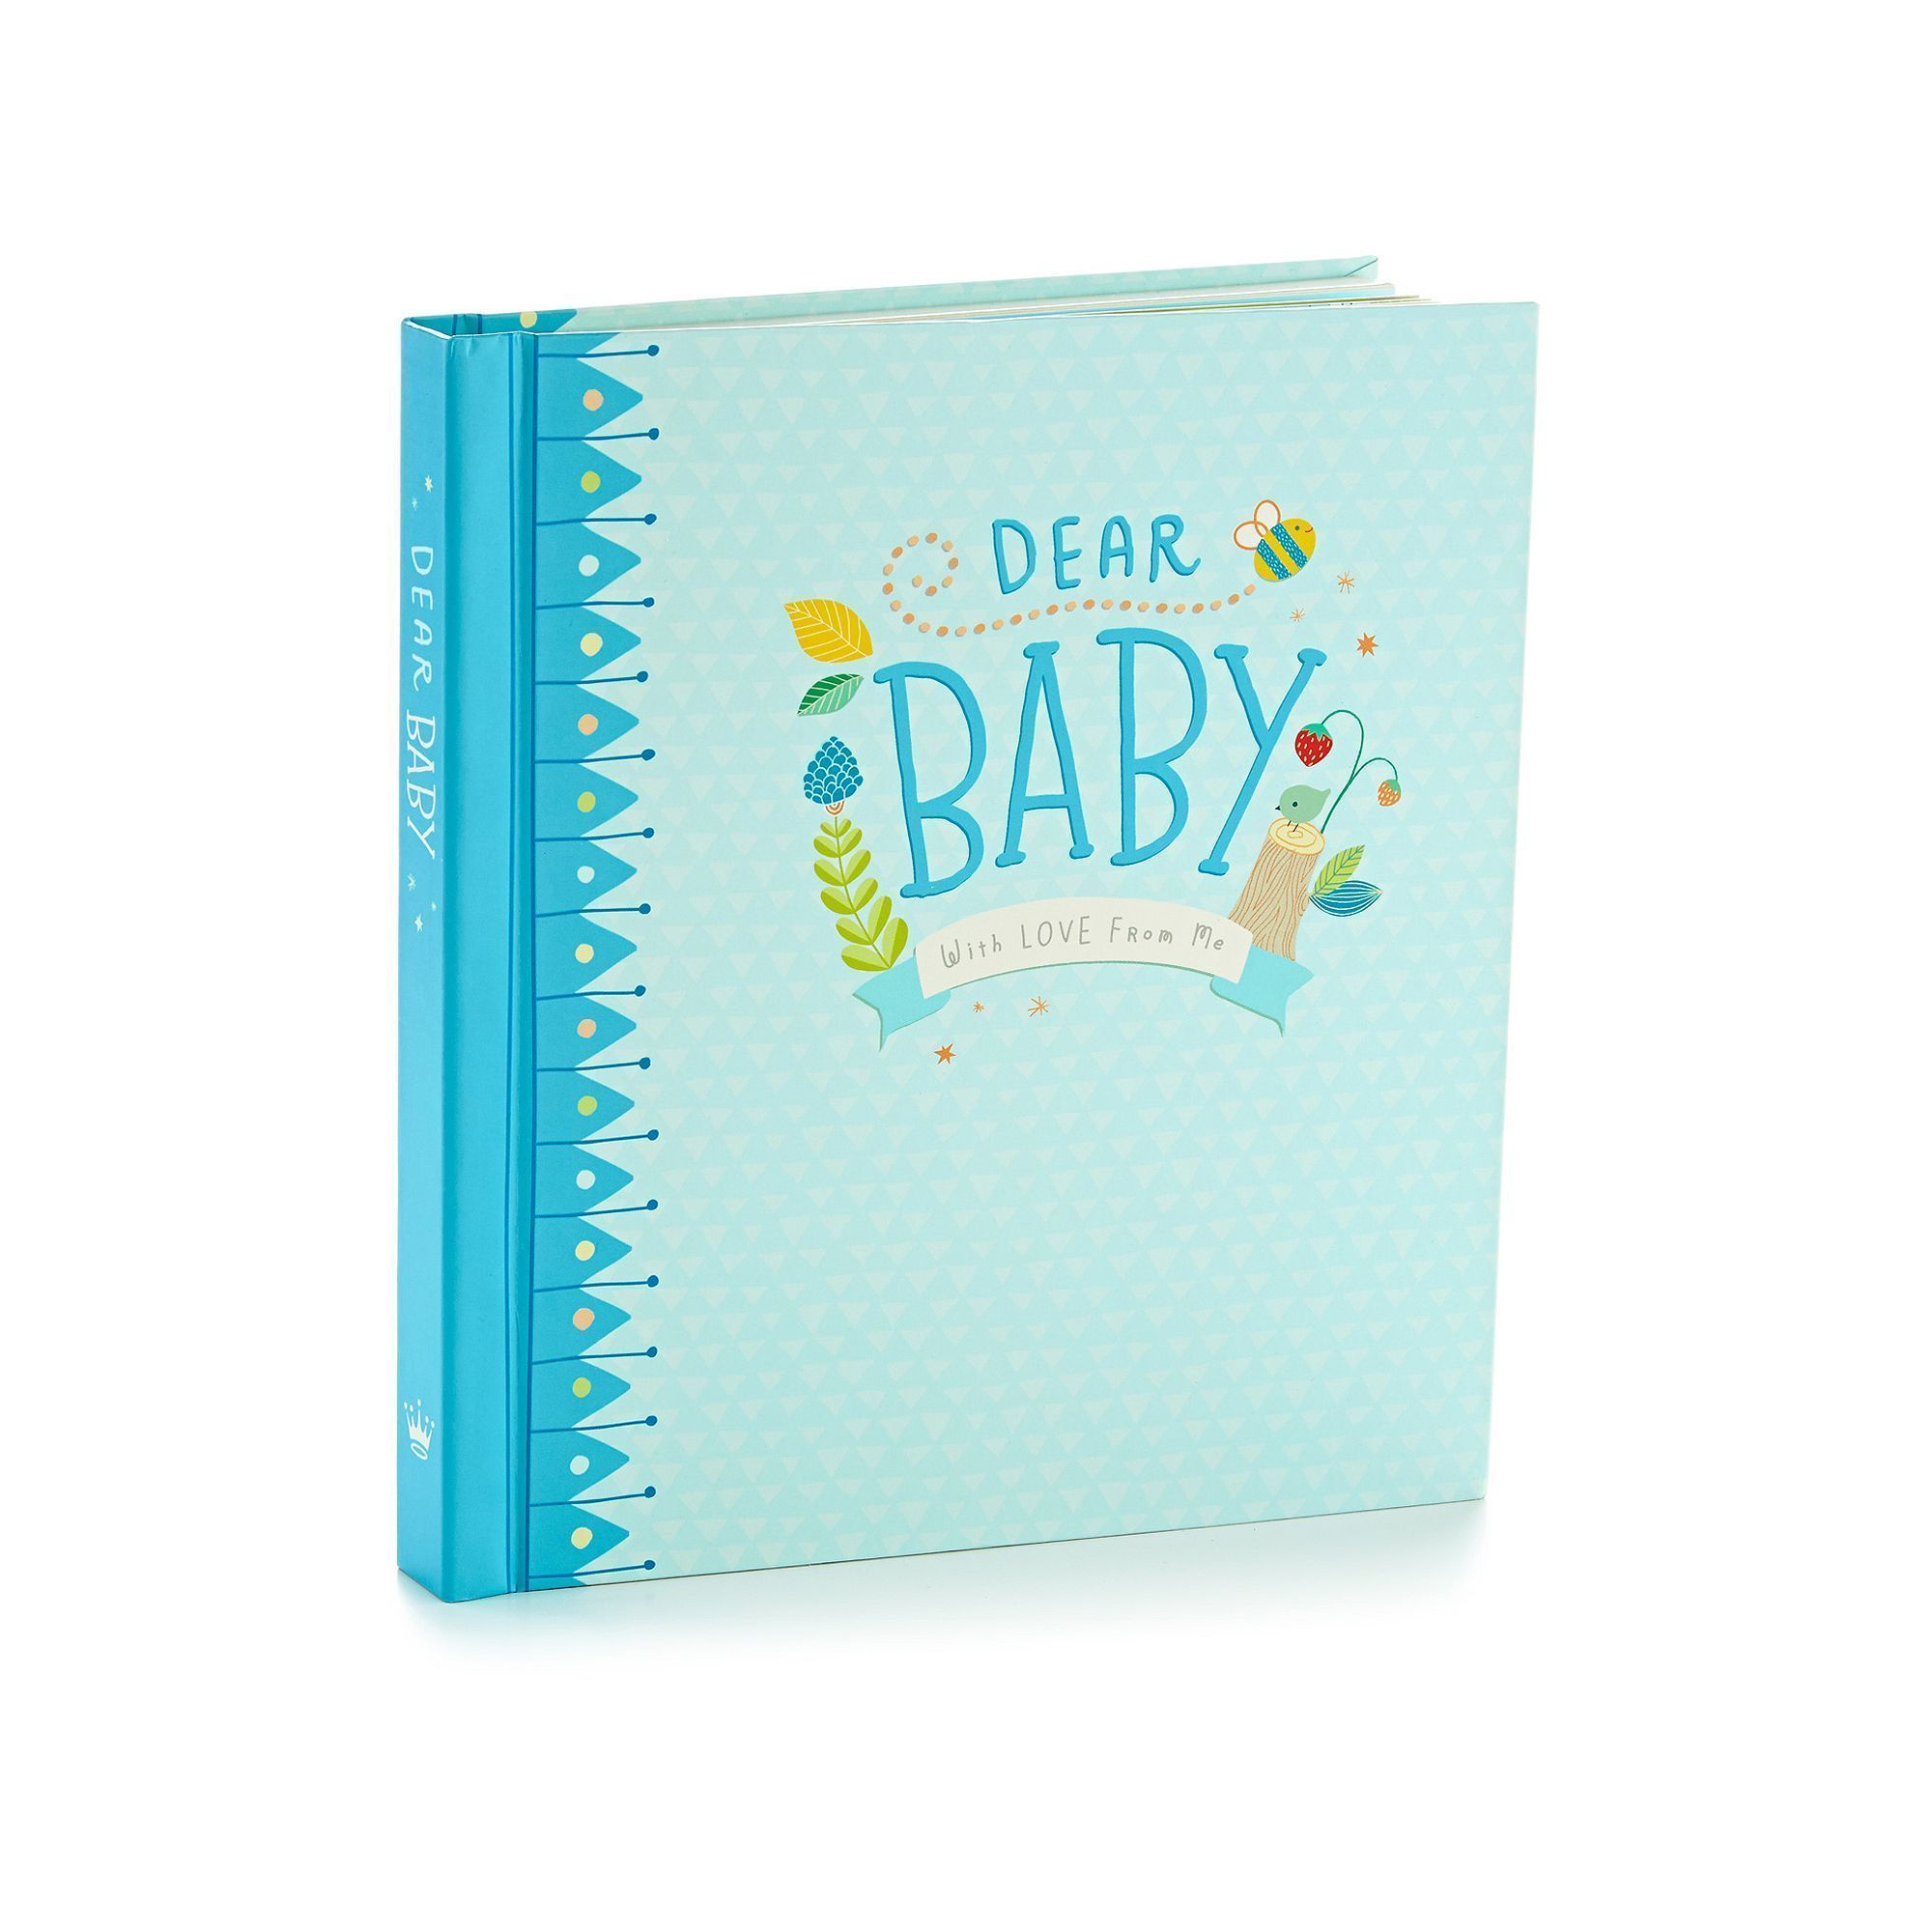 Hallmark Dear Baby Recordable Book #babyrecordbook Hallmark Dear Baby Recordable Book, Multicolor #babyrecordbook Hallmark Dear Baby Recordable Book #babyrecordbook Hallmark Dear Baby Recordable Book, Multicolor #babyrecordbook